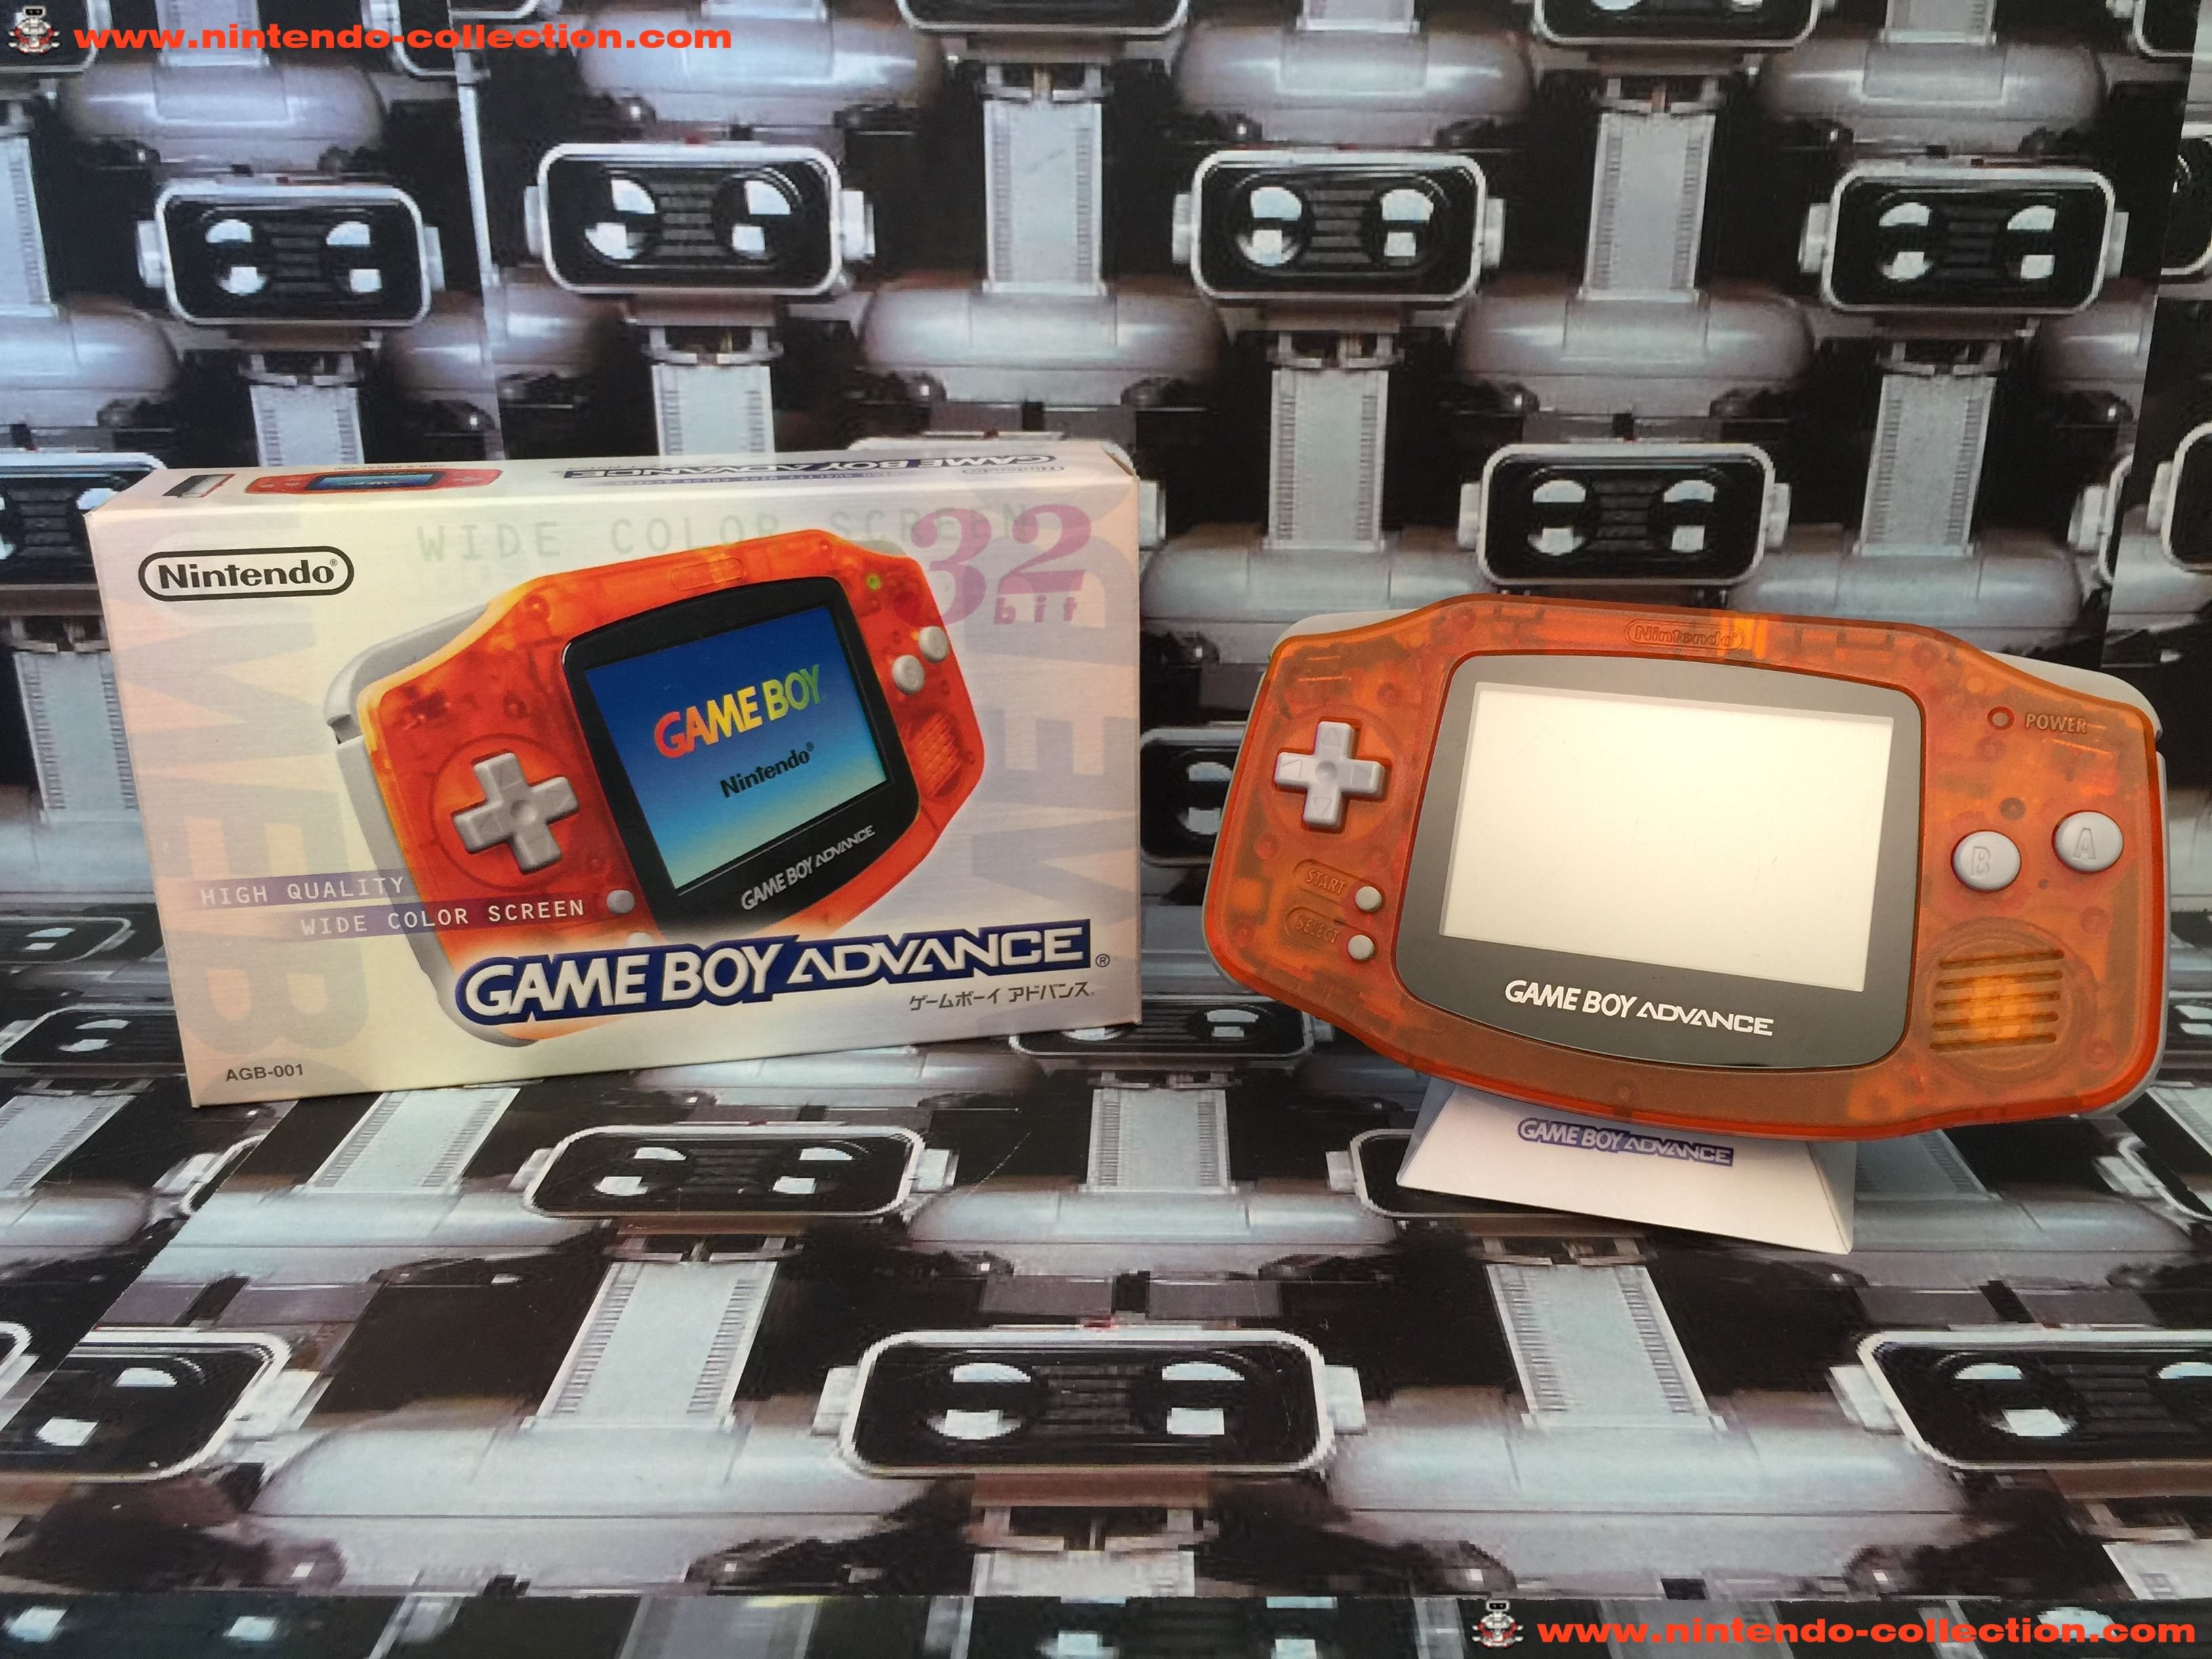 www.nintendo-collection.com - Gameboy Advance GBA Daiei Limited Edition Clear orange Clear black noi